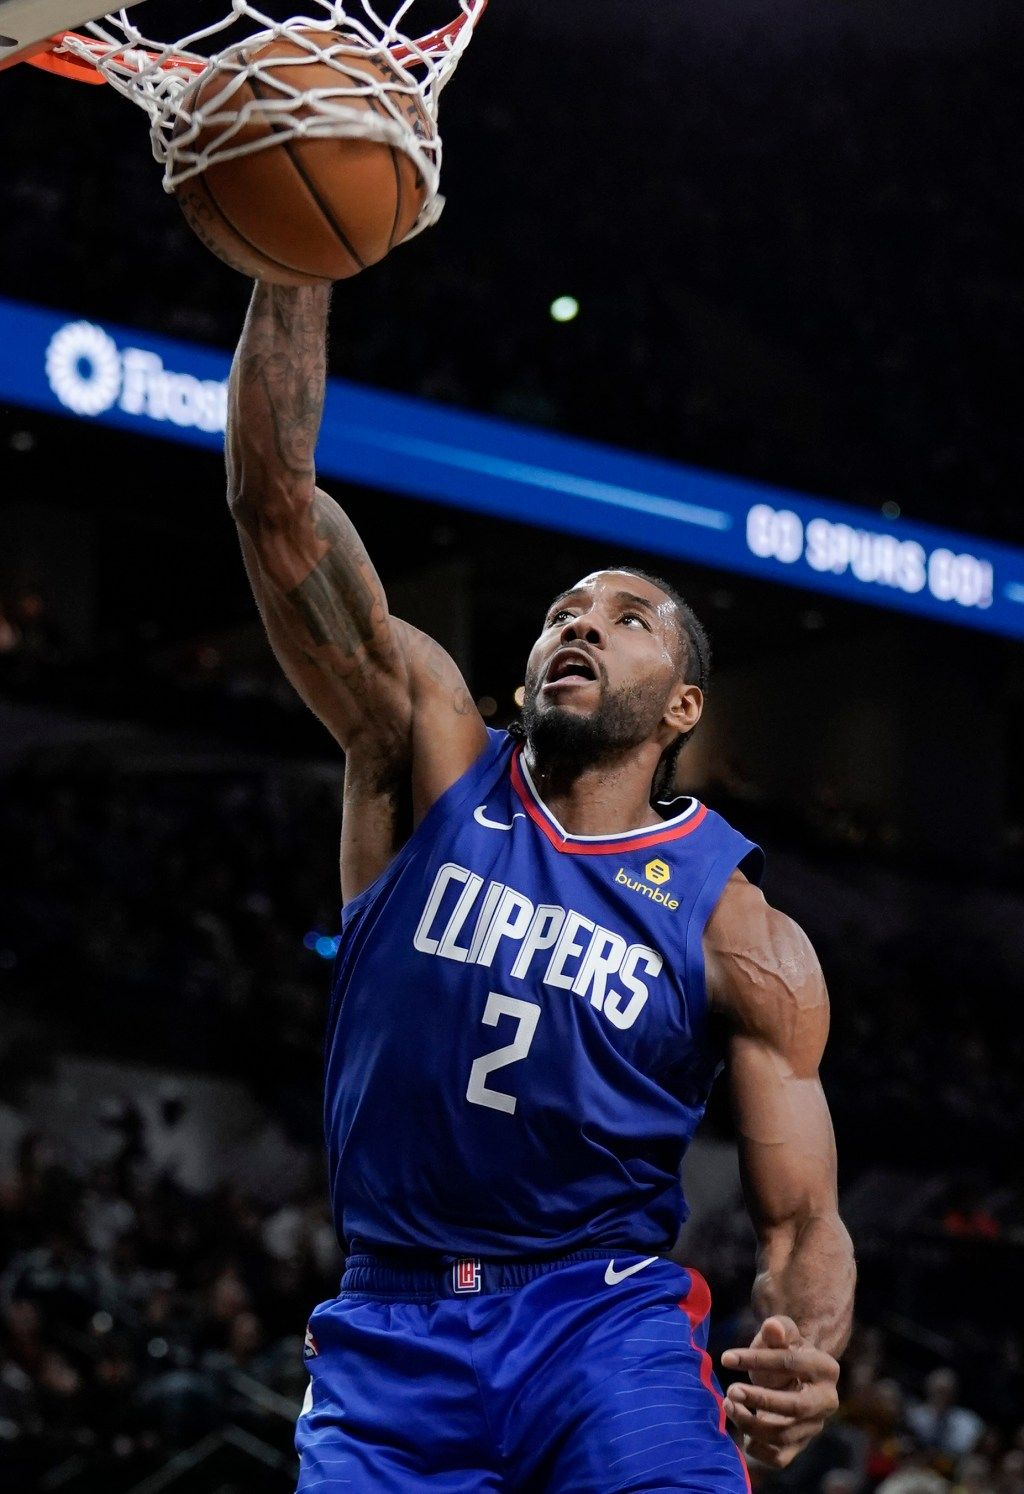 Clippers pound Spurs for Kawhi Leonard's first win in San